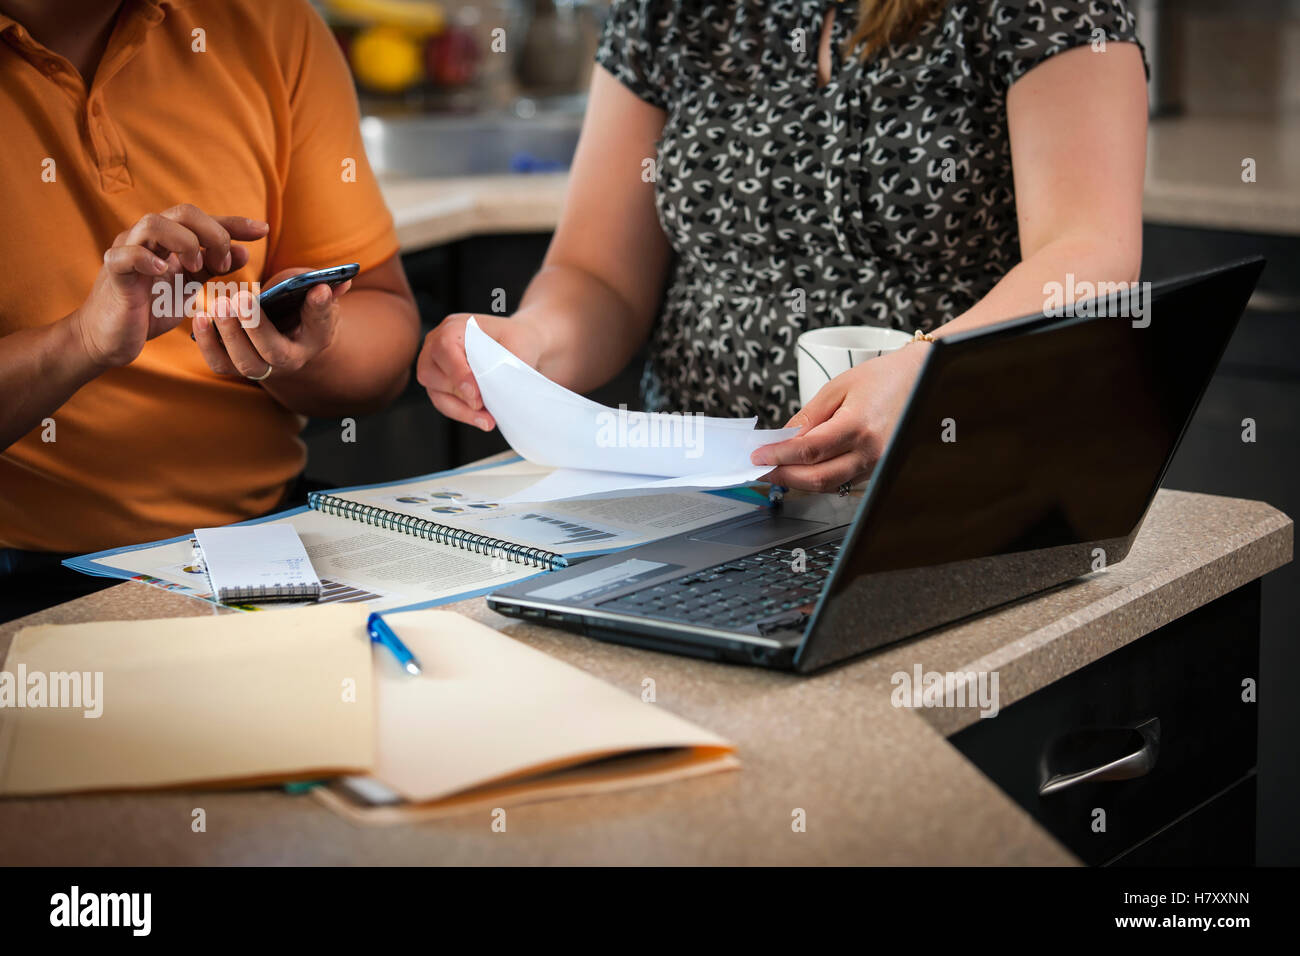 A man and woman in the kitchen working together with documents and a computer; Regina, Saskatchewan, Canada - Stock Image